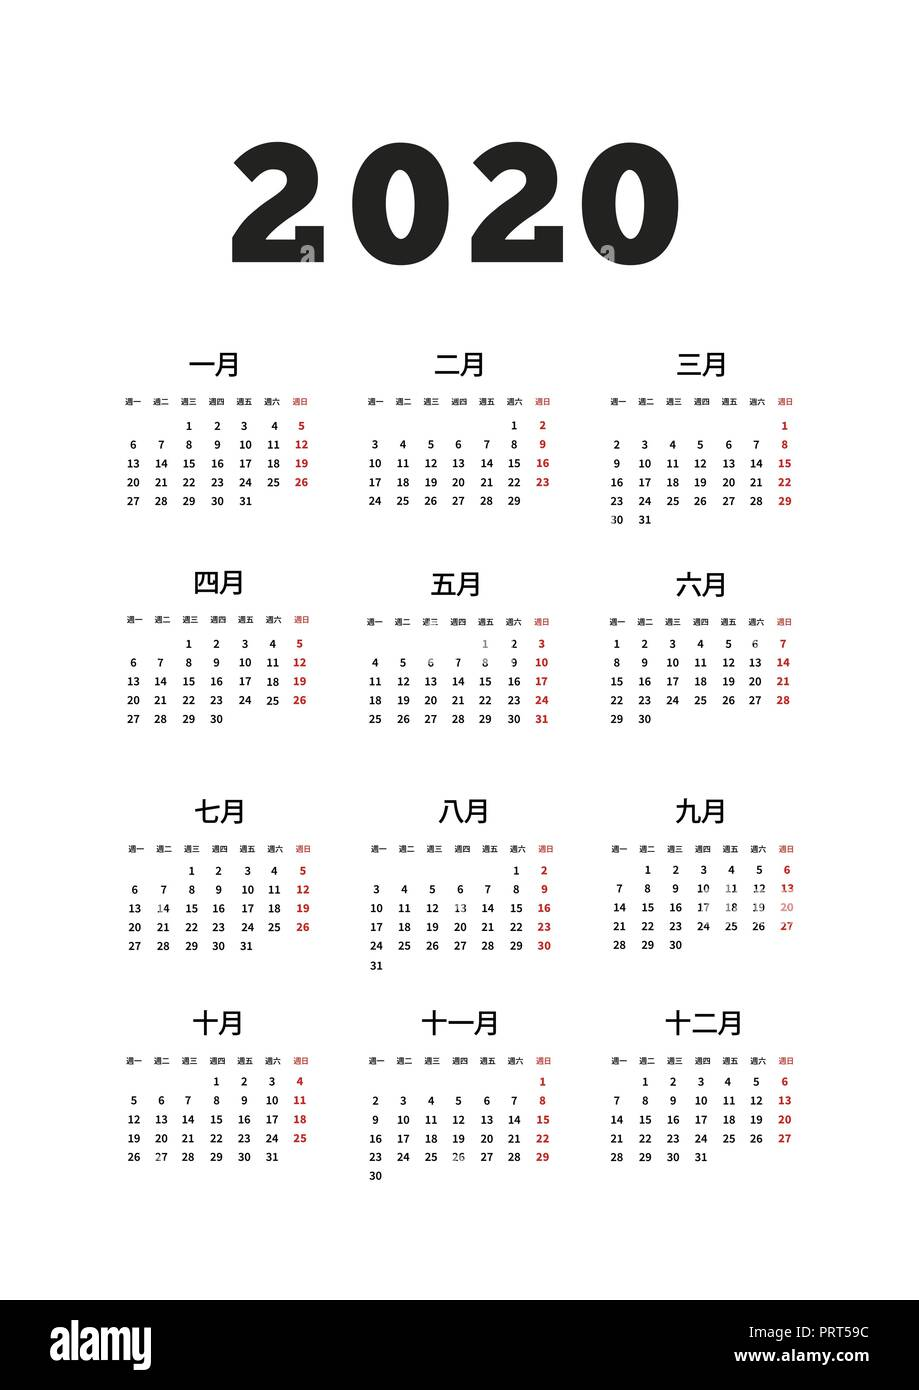 2020 Calendario Chino.Ano 2020 Calendario Simple En Idioma Chino Tamano A4 Hoja